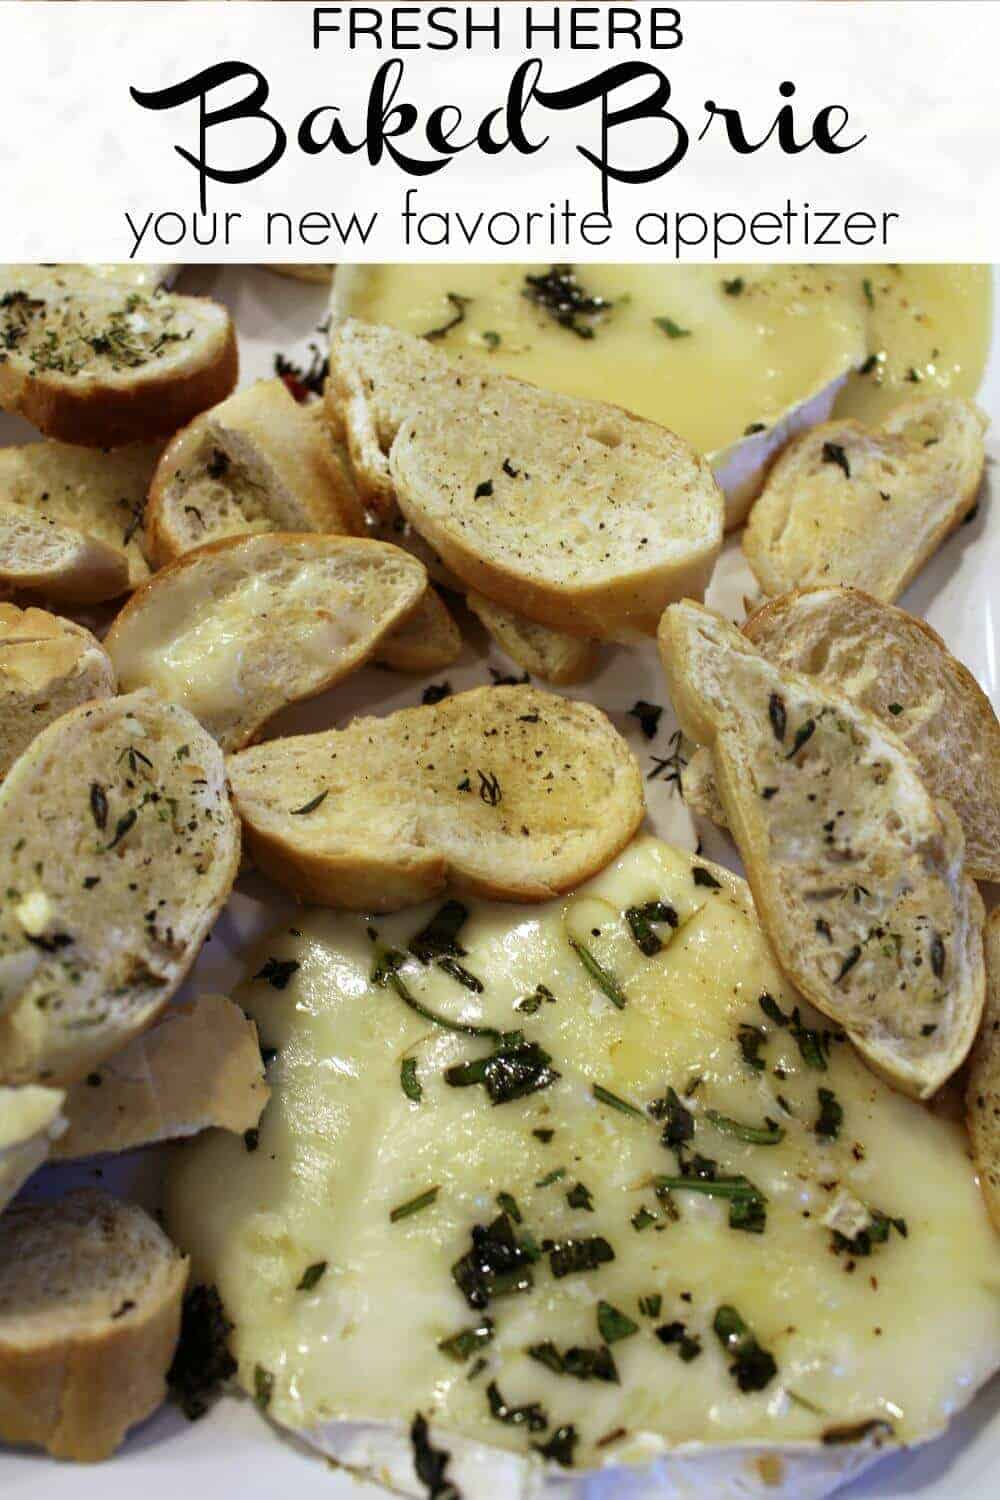 Fresh Herb Baked Brie Appetizer